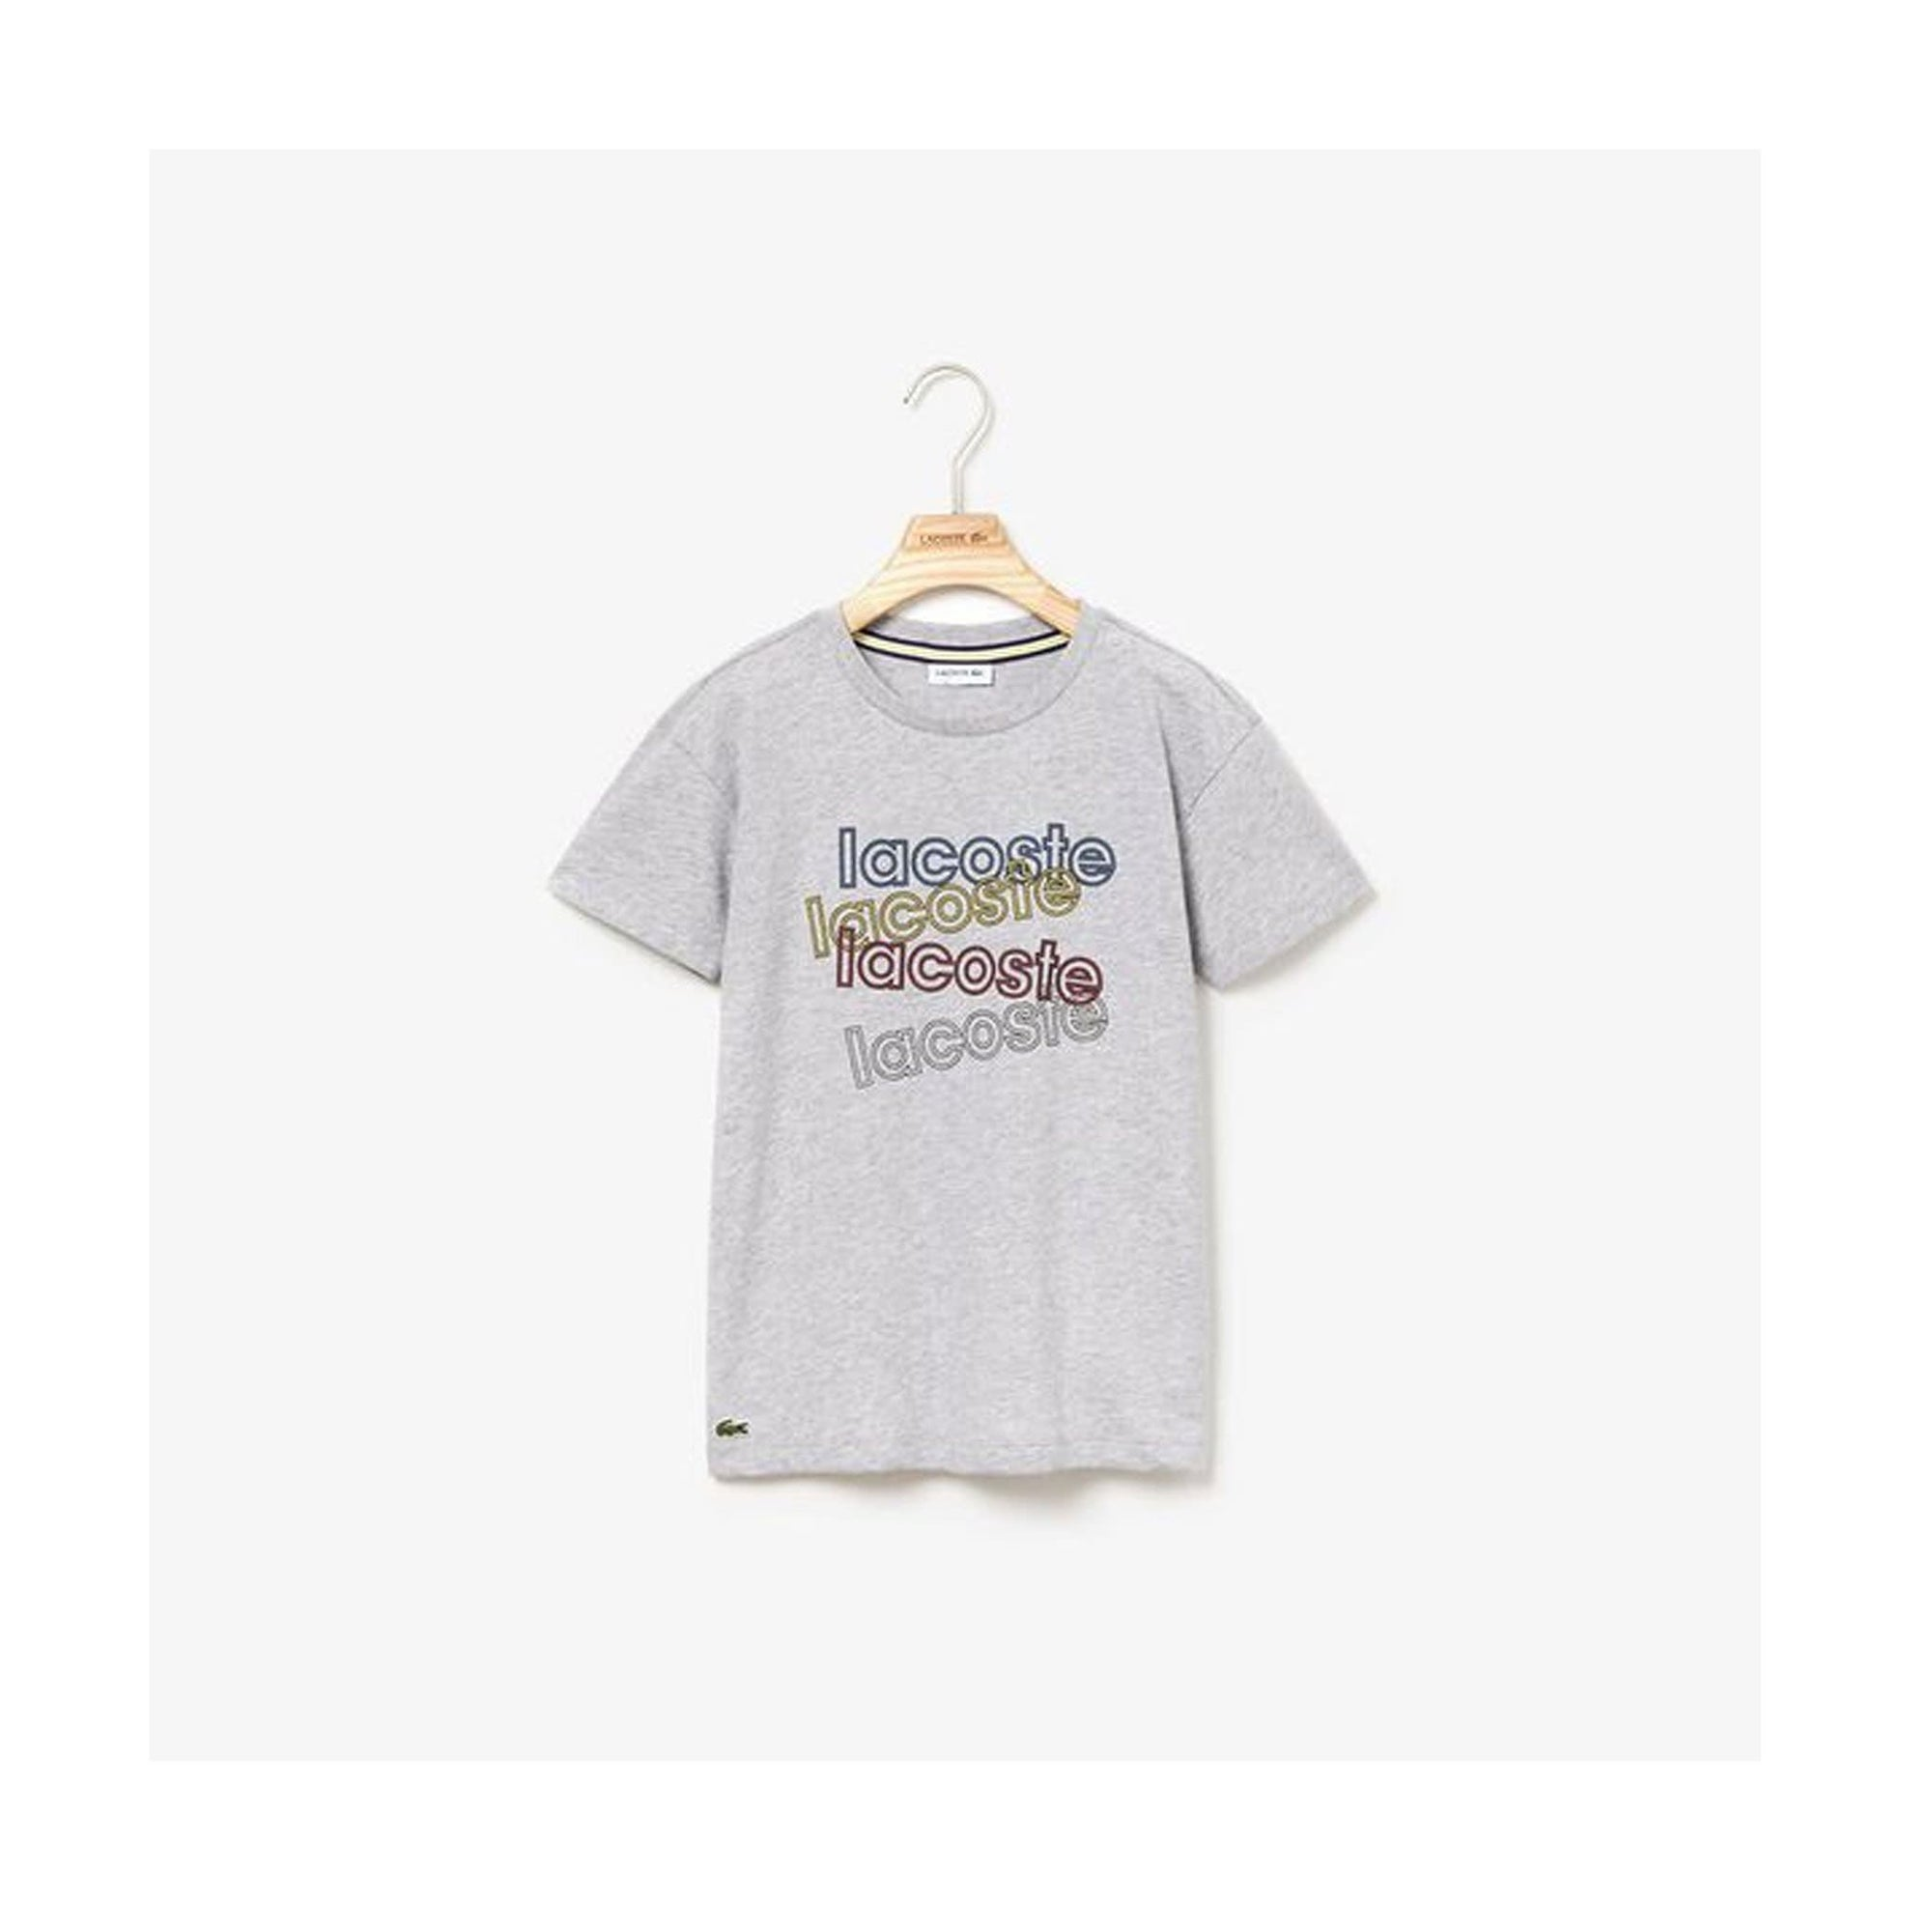 Lacoste Boys Athleisure T-Shirt Grey Marle